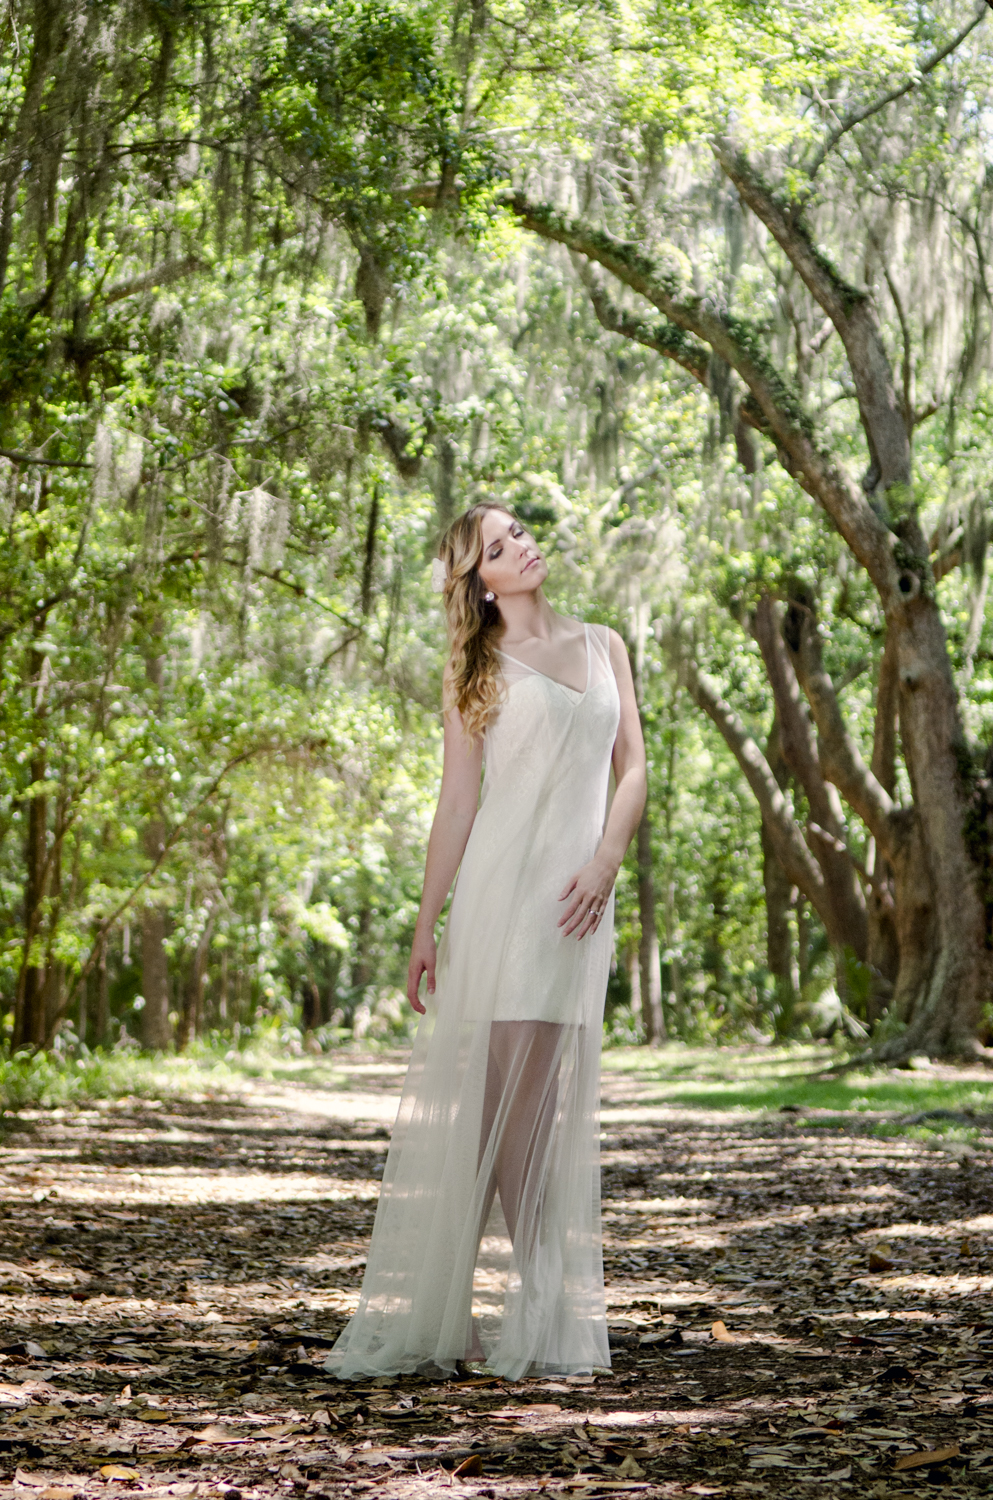 Model: Alyssa Buettner Hair and Makeup: Ashley Lo Stylist: Brittany Stafford Assistant: Tayler Aitken  Dresses From: Ivory and Beau Location: Wormsloe Historic Site - Savannah, GA